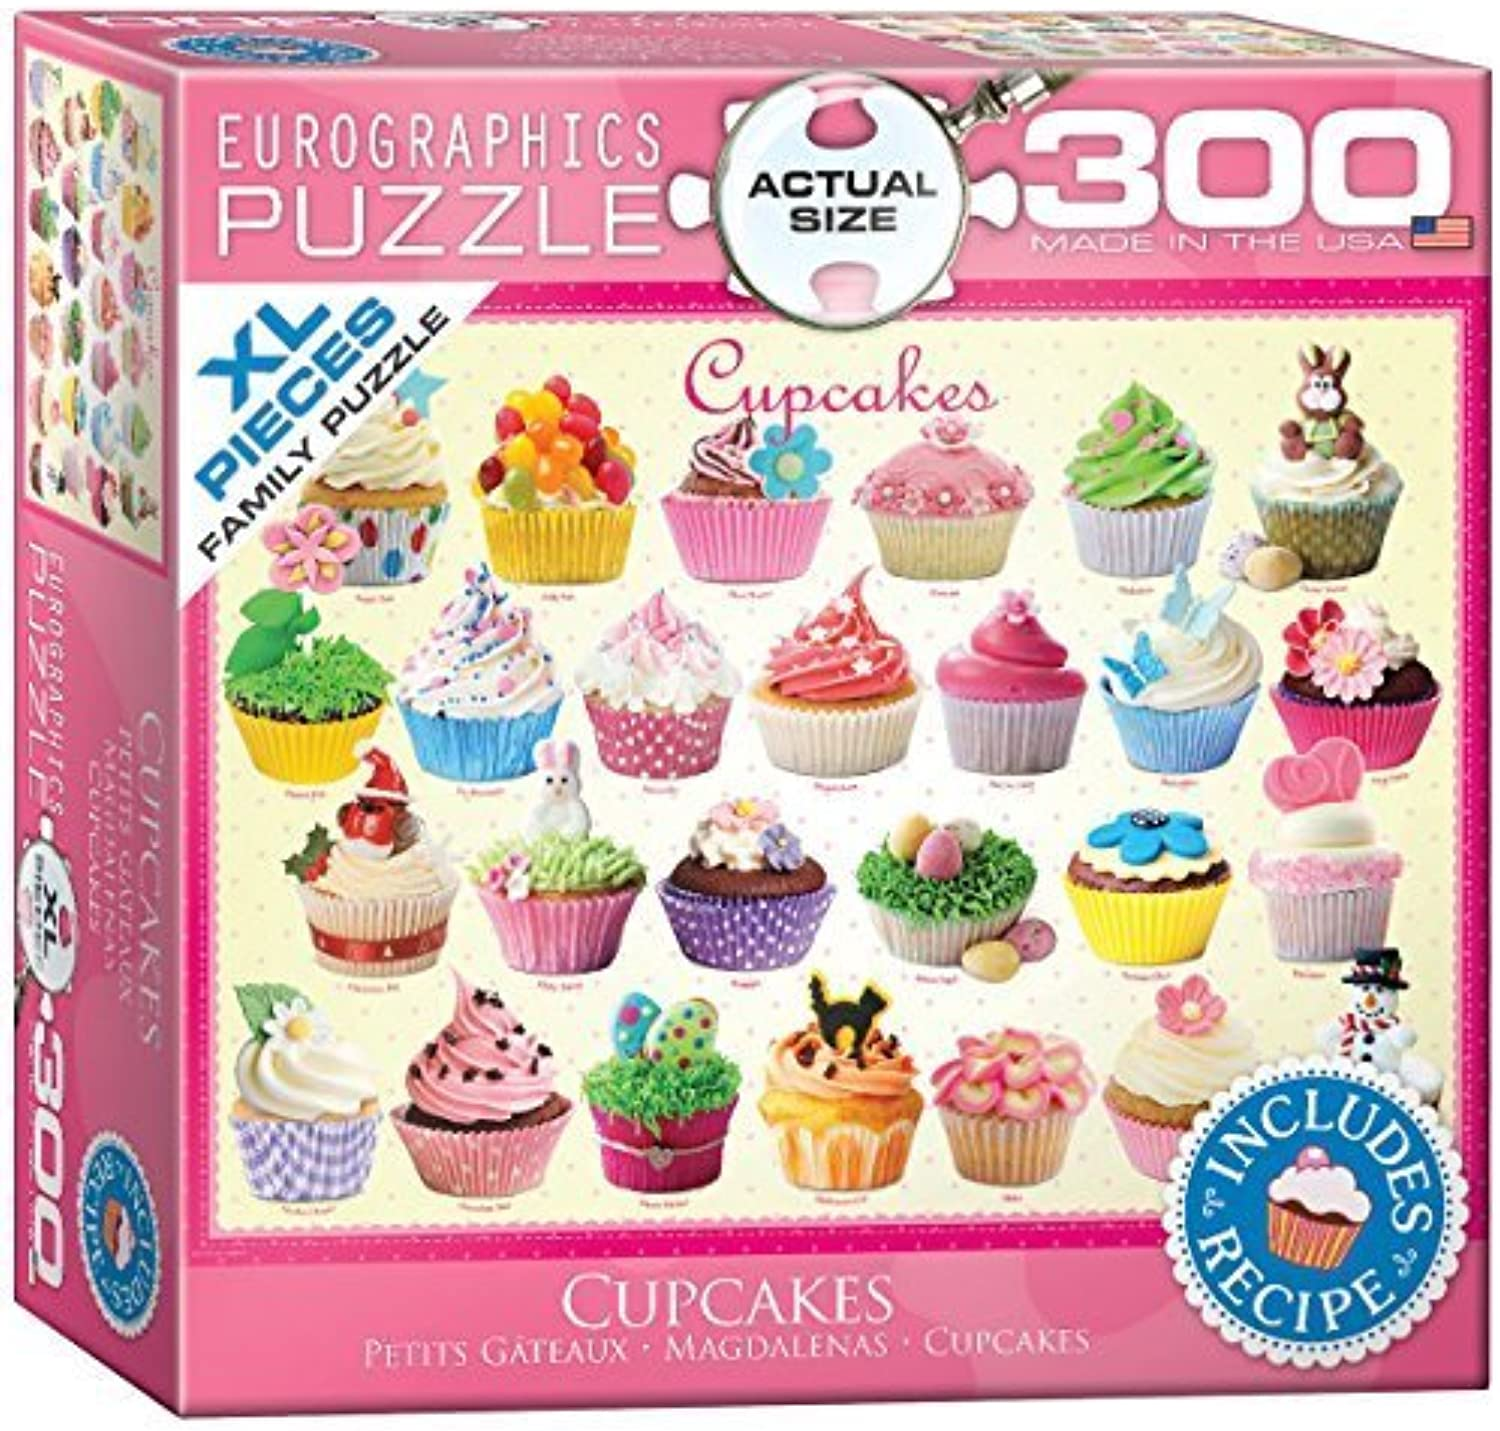 Eurographics Cupcakes MO Puzzle (XL, 300 Pieces) by Eurographics